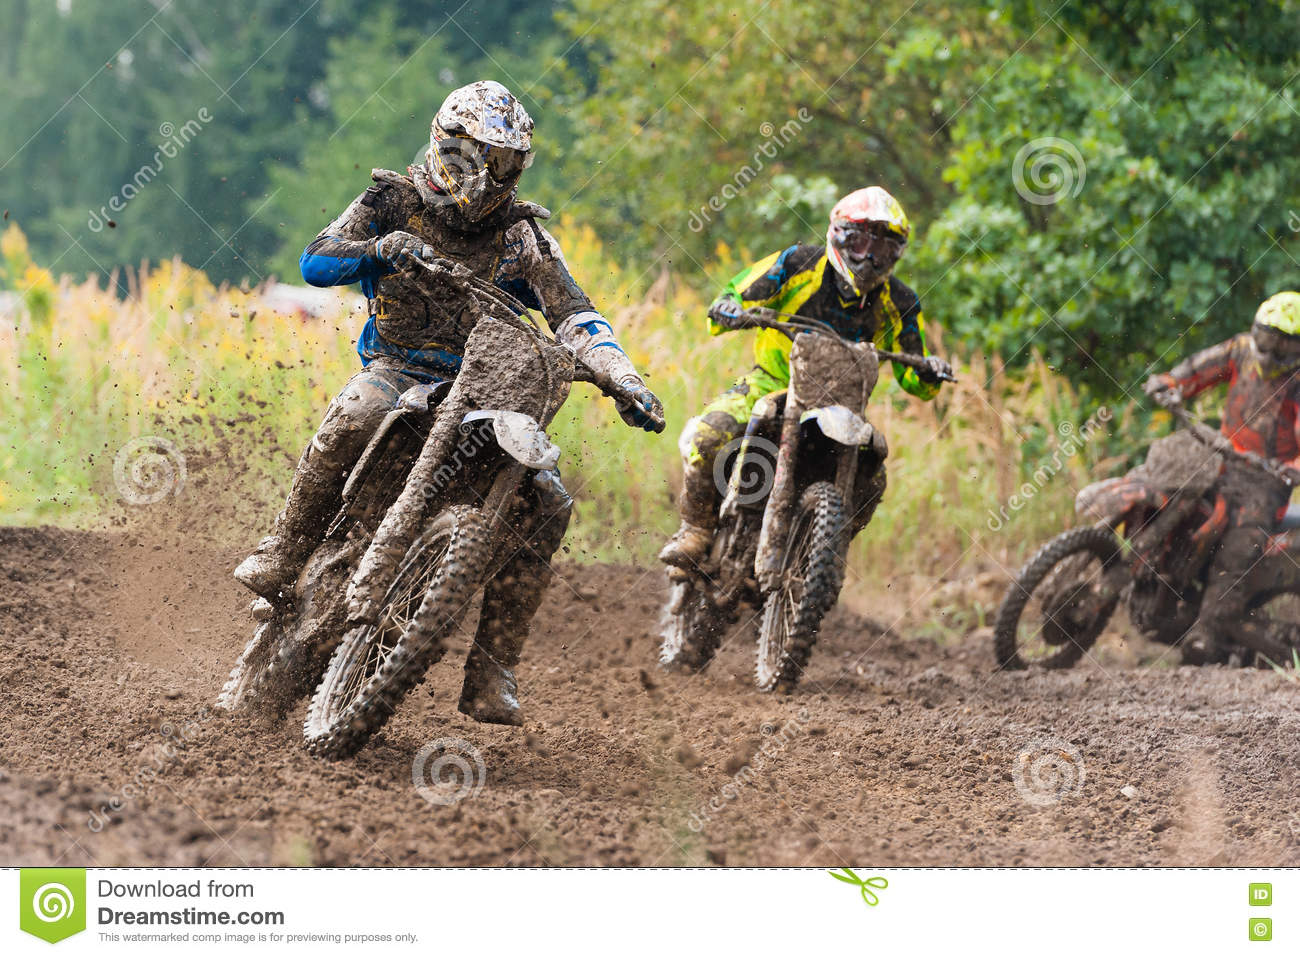 Close Up Of A Dirt Bike And Rider In A Mud Puddle. Stock